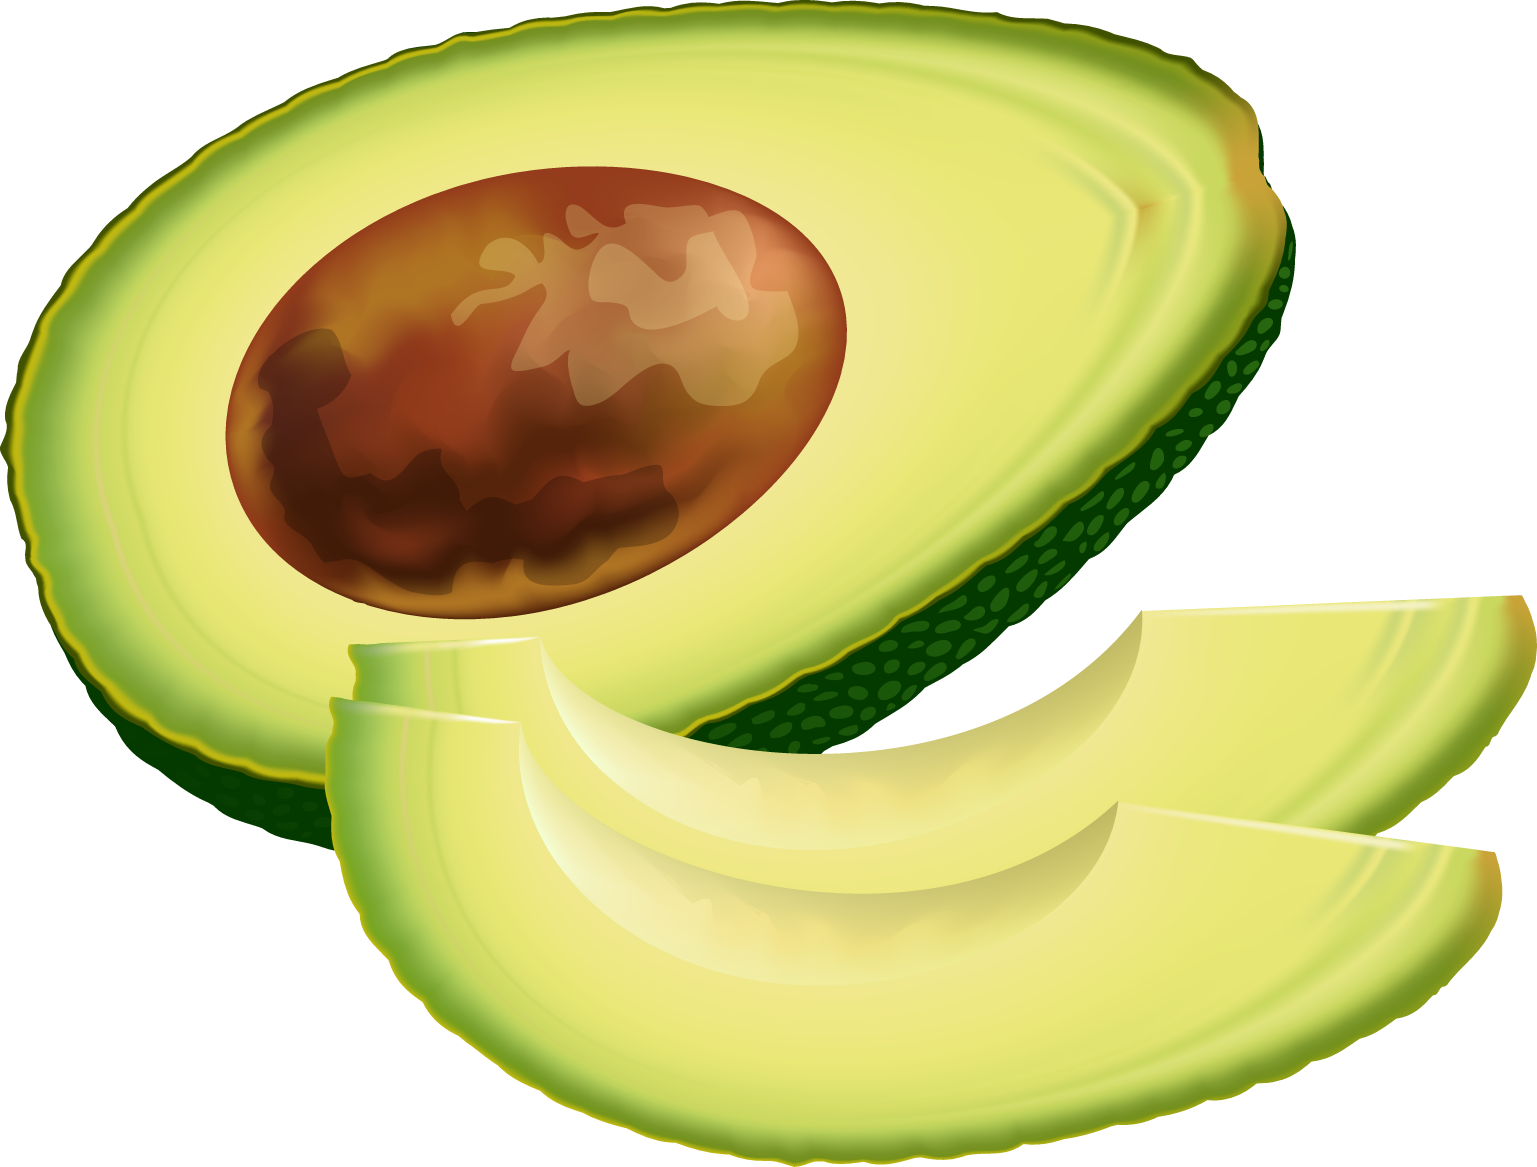 Transparent avocado animated. Free cliparts download clip